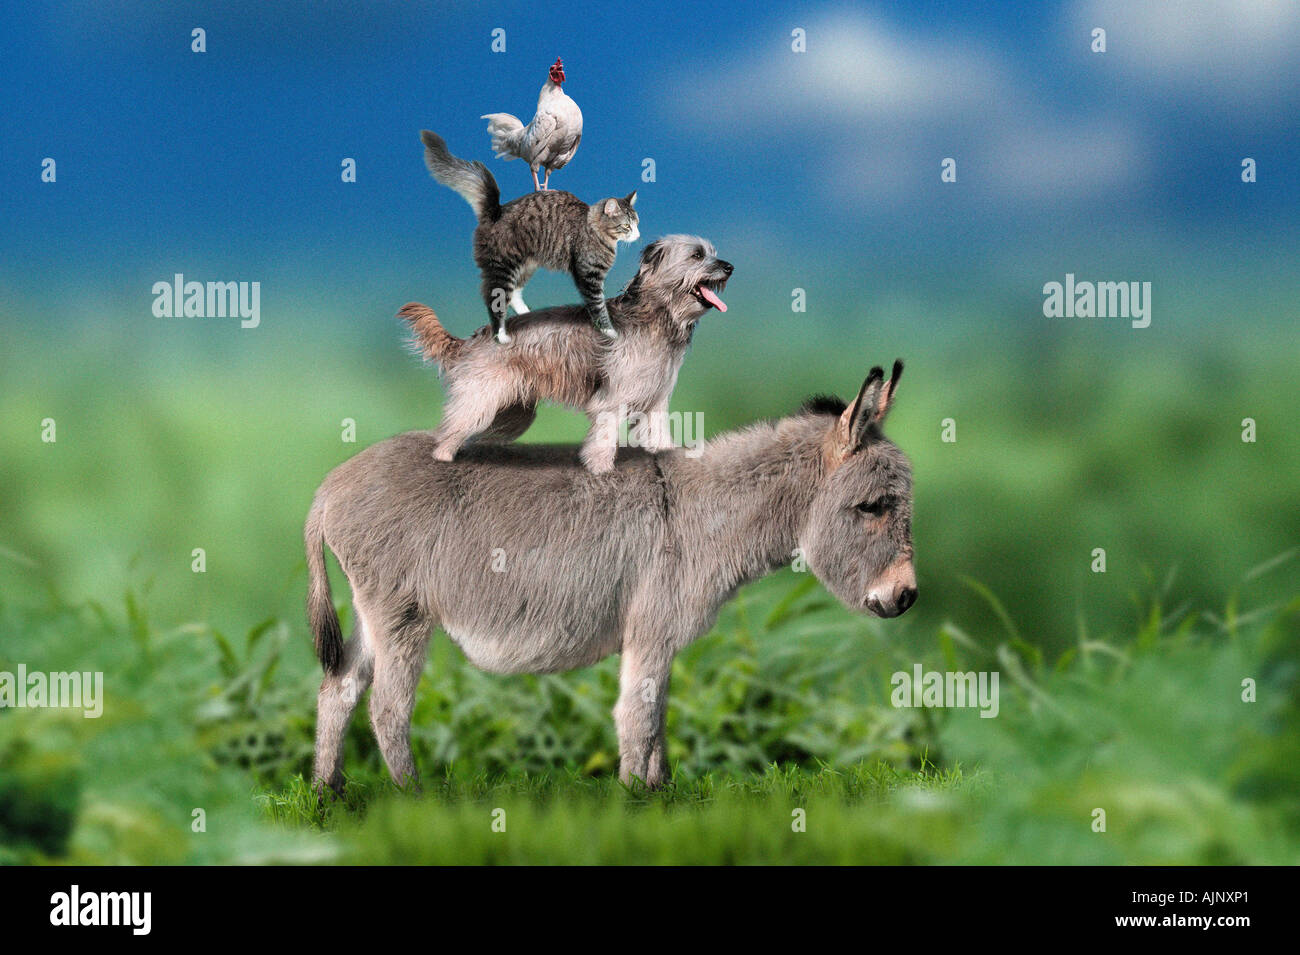 Rooster On A Cat On A Dog On A Donkey